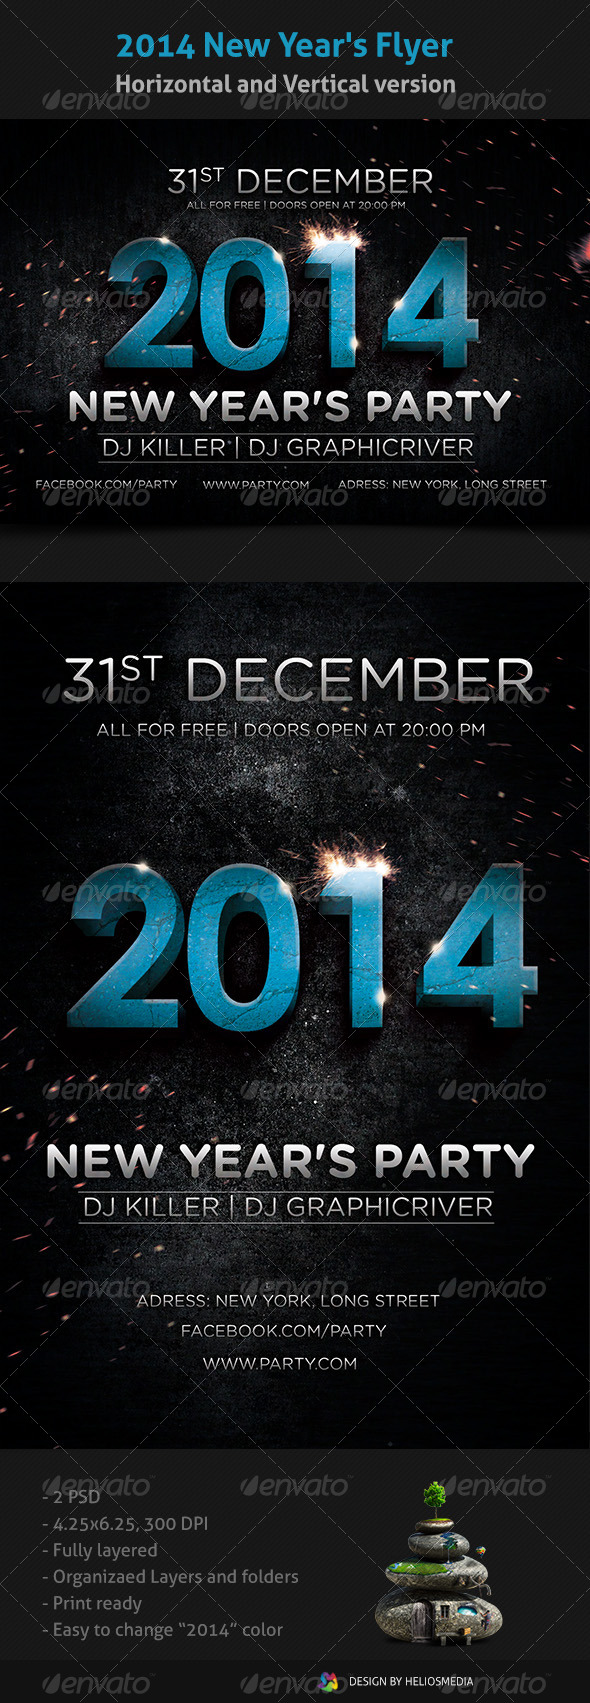 2014 New Year's Flyer  - Clubs & Parties Events